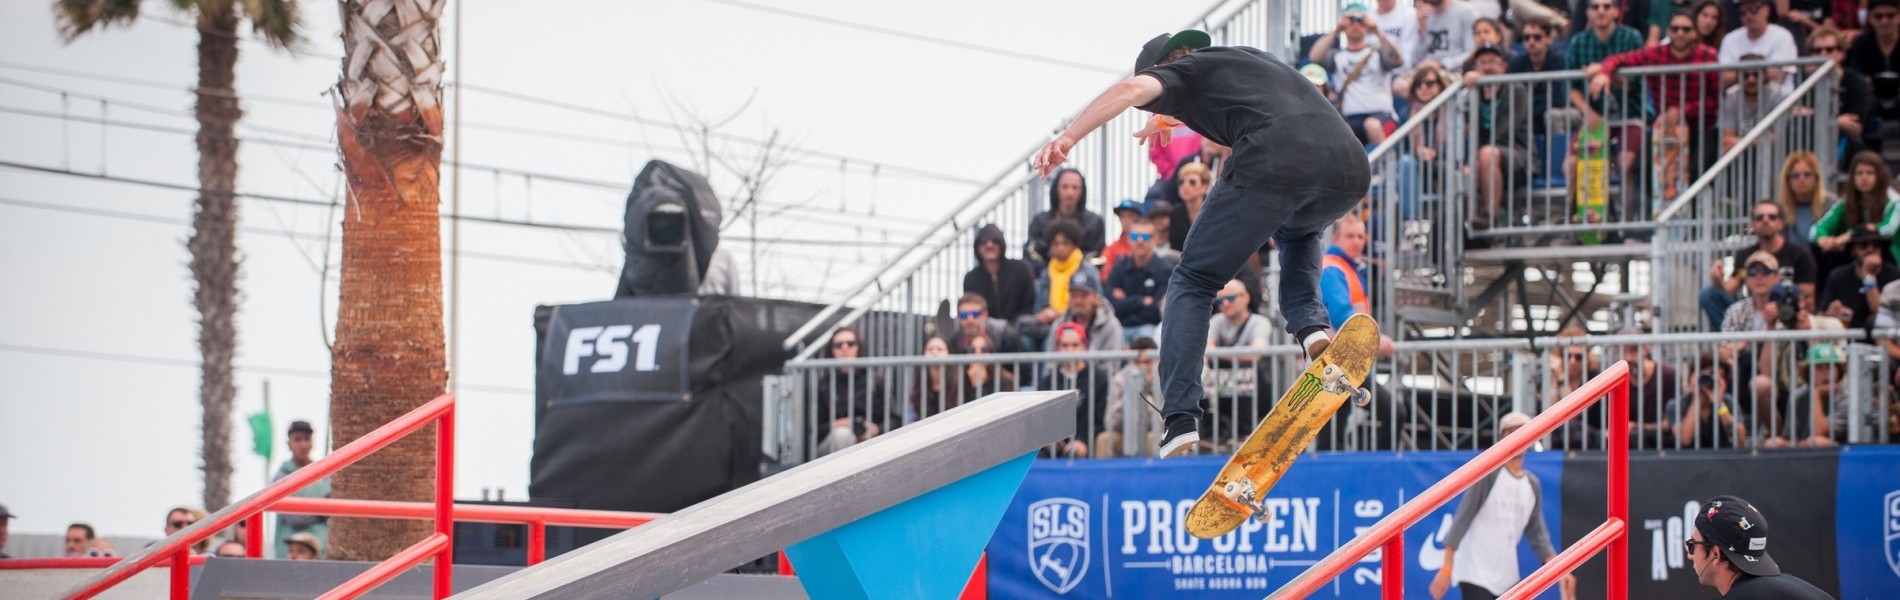 Monster athletes compete in the 2016 Pro Open in Barcelona Spain, Finals